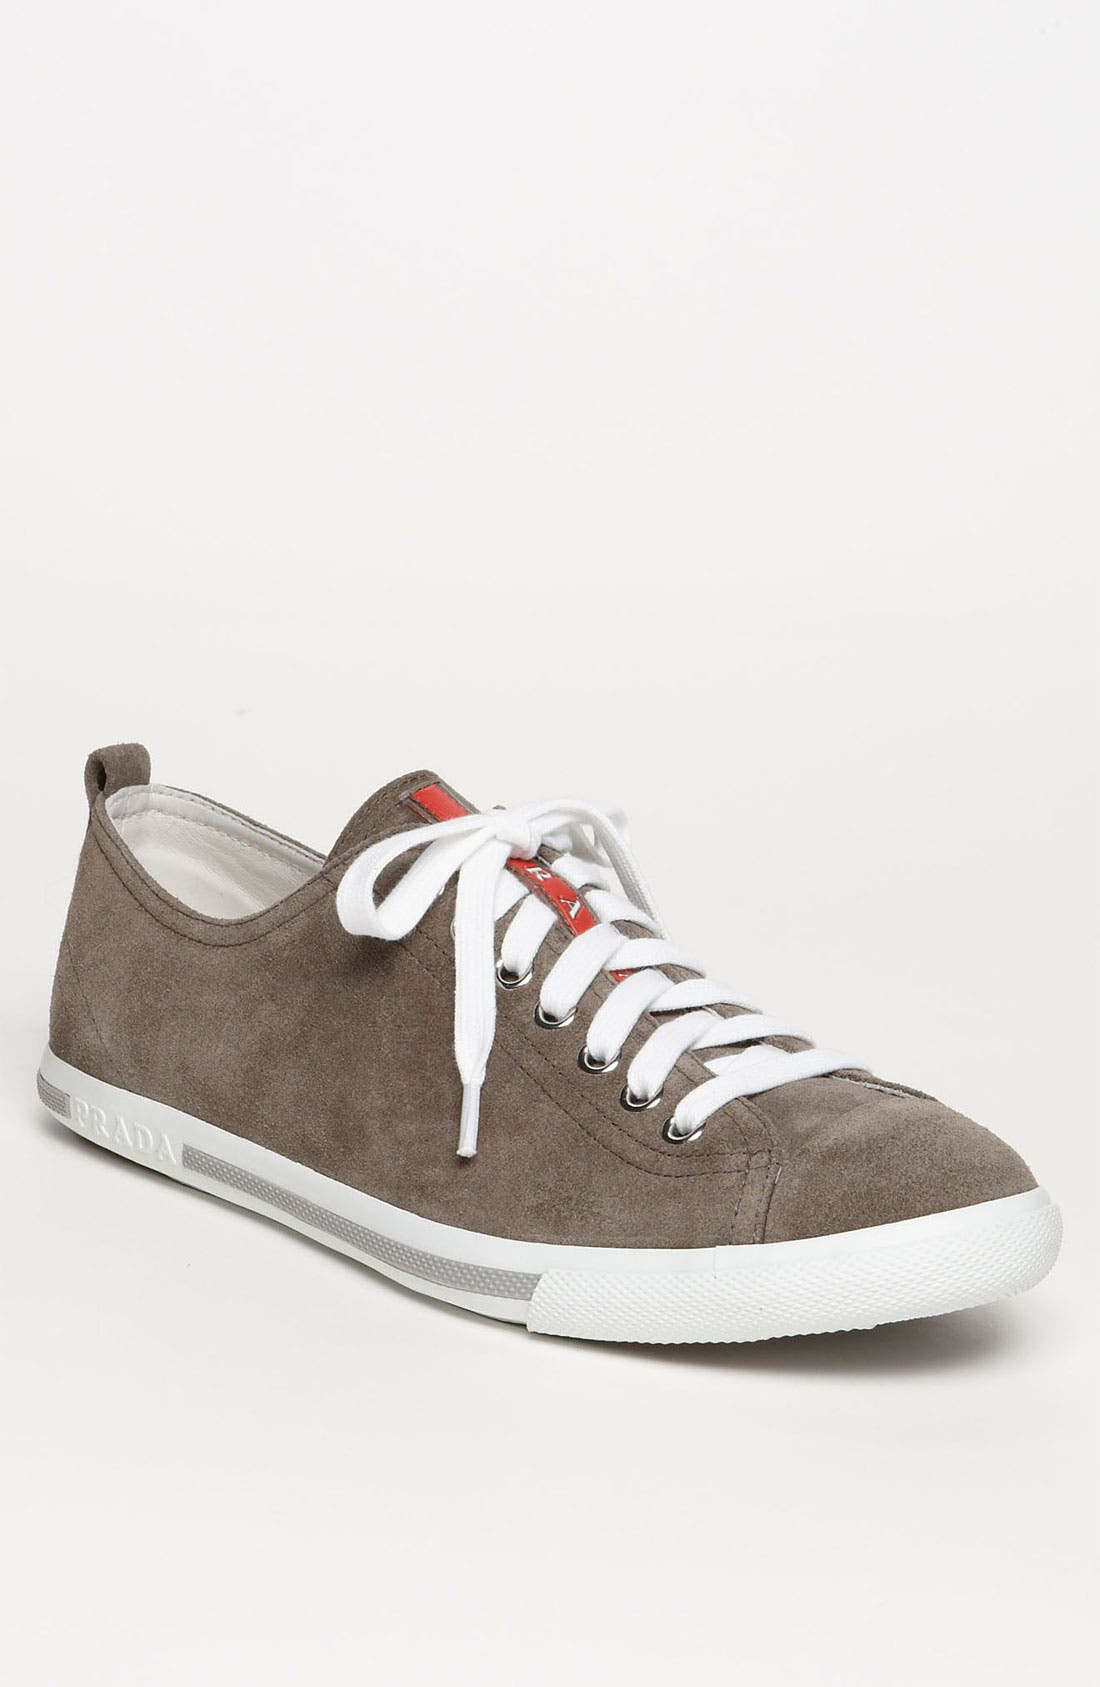 Main Image - Prada Low Profile Suede Sneaker